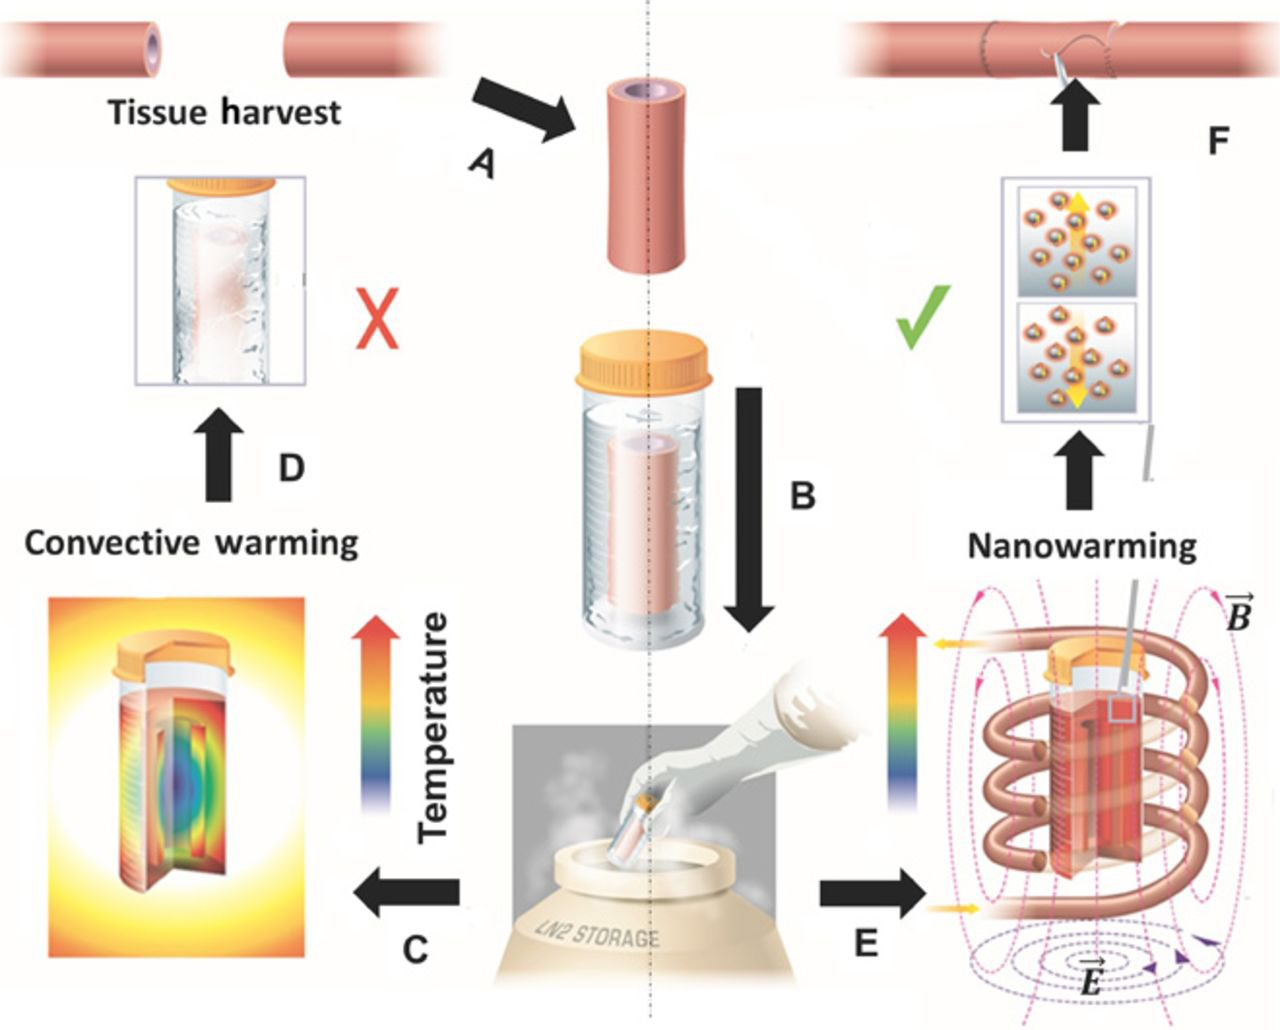 schematic showing the process, called vitrification, for preserving tissue to be transplanted